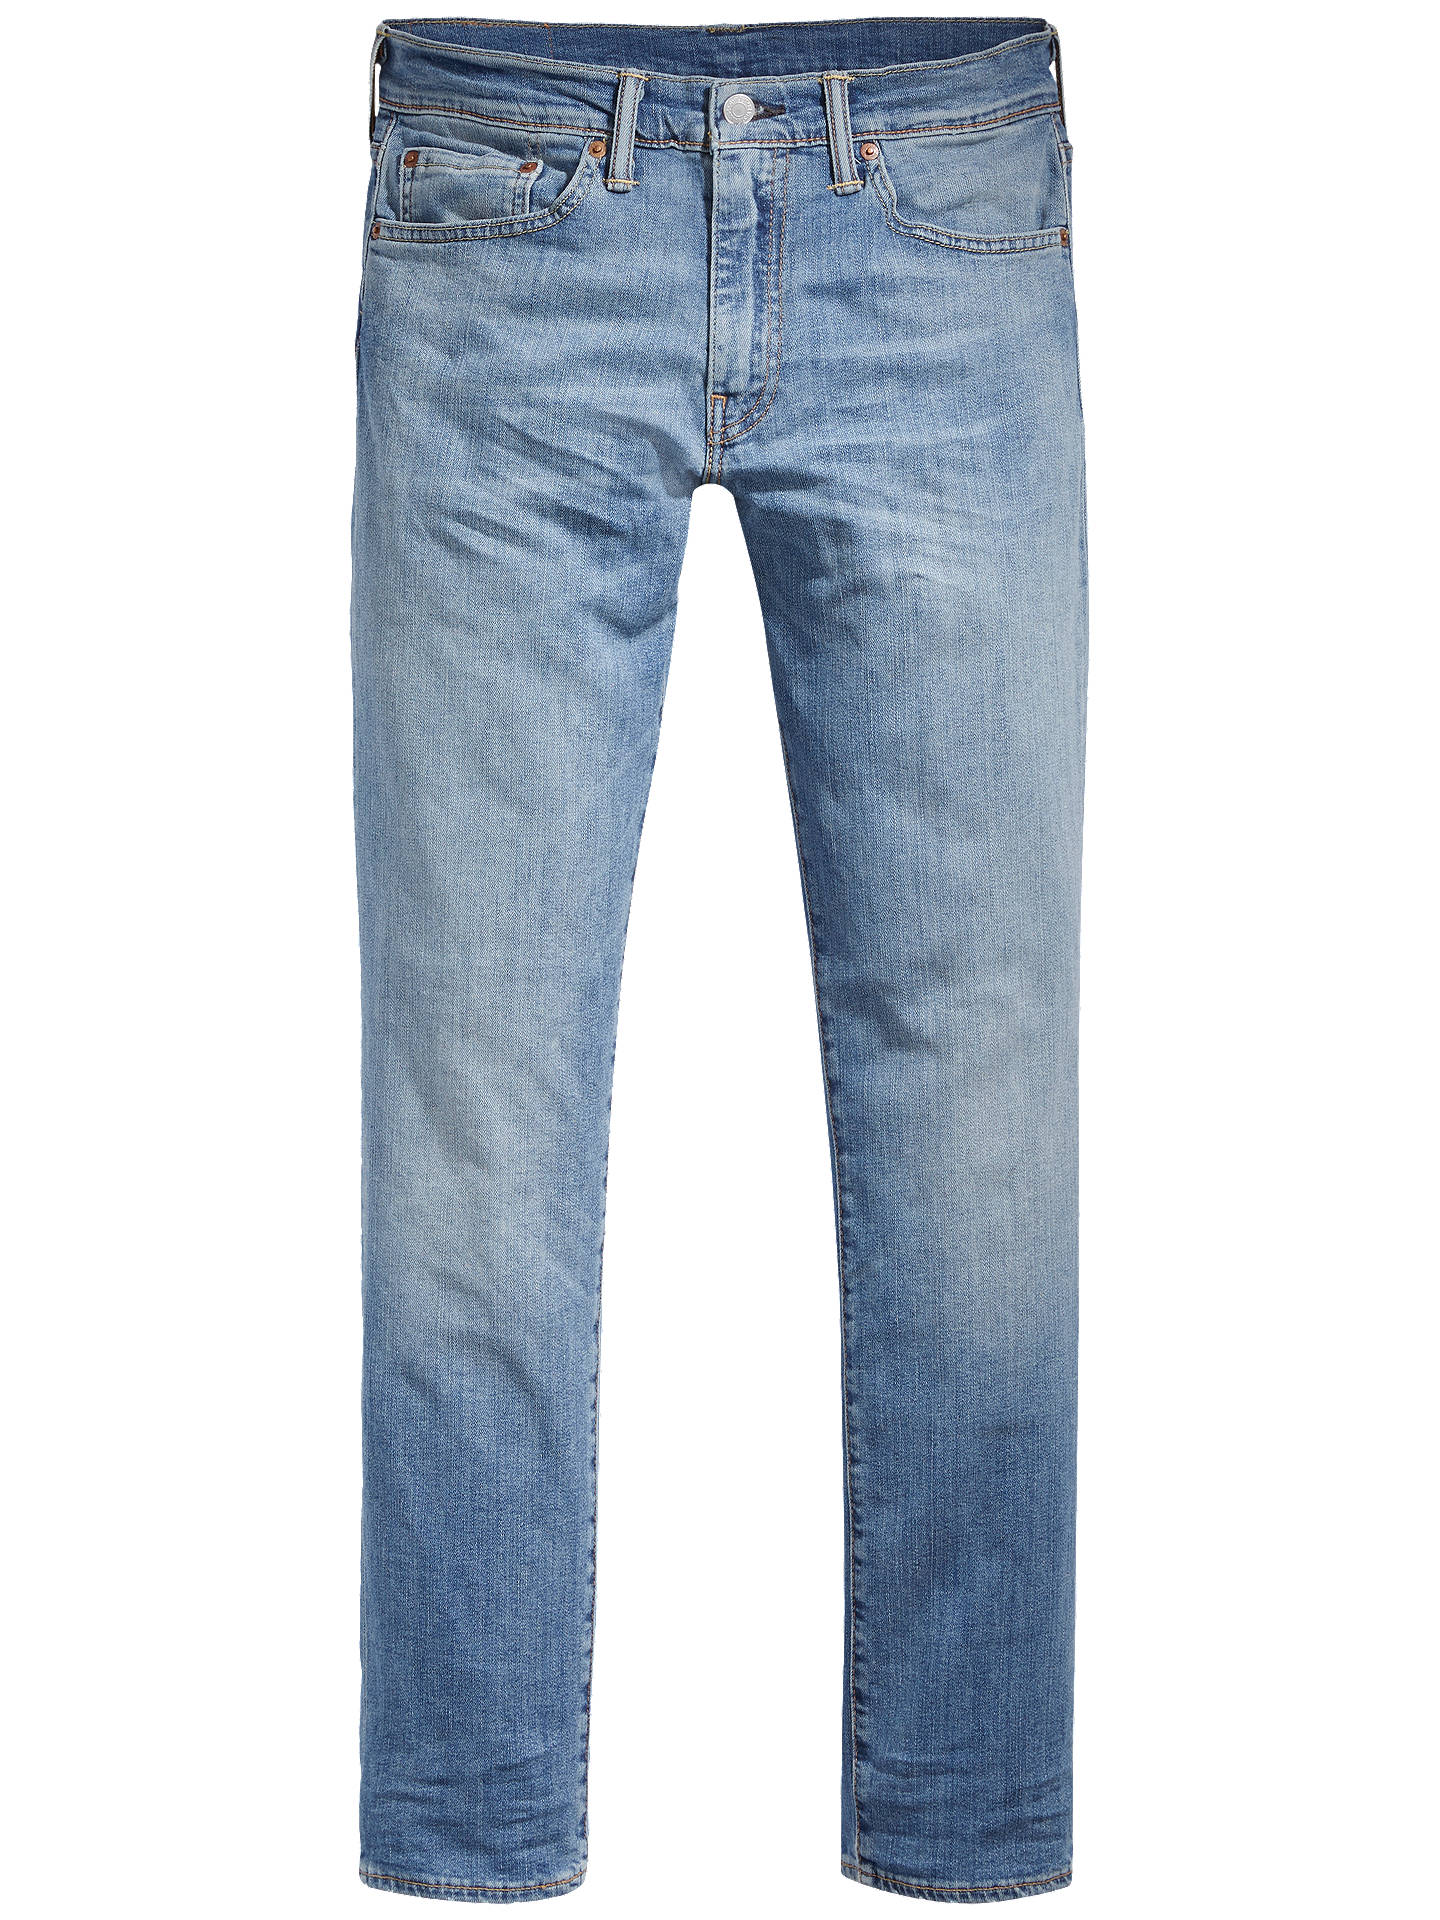 cd5c11235ab Buy Levi's 511 Slim Fit Jeans, Sun Fade, 30S Online at johnlewis.com